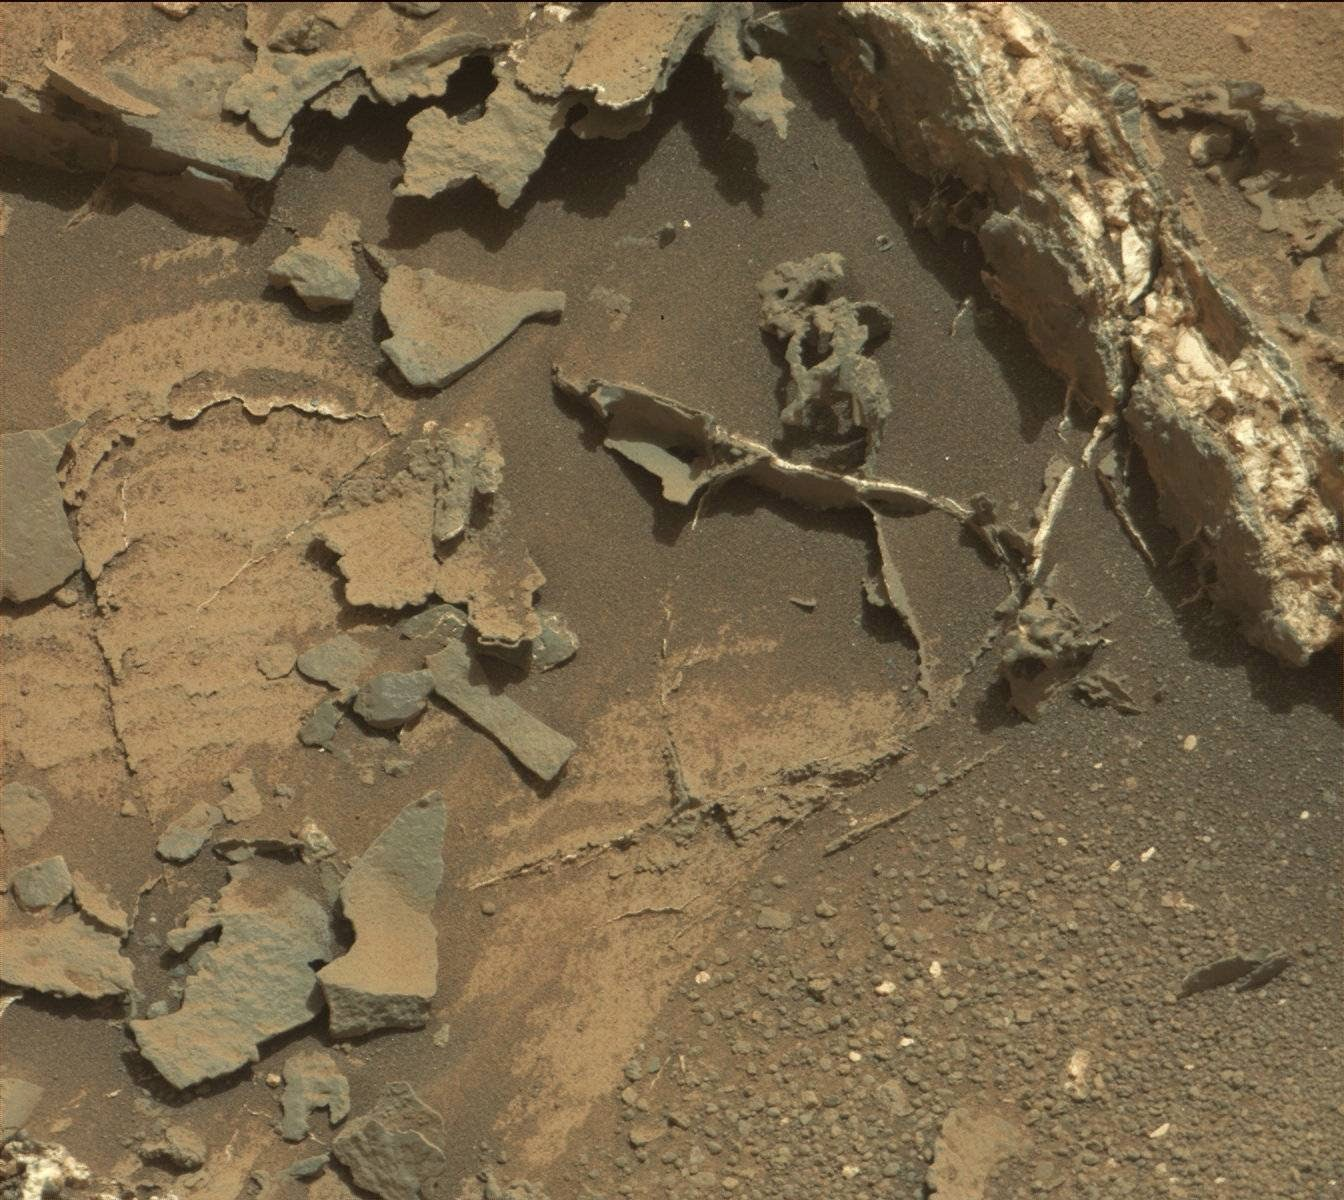 UFO WORLD: NASA - Mars Latest Images by Curiocity Rover